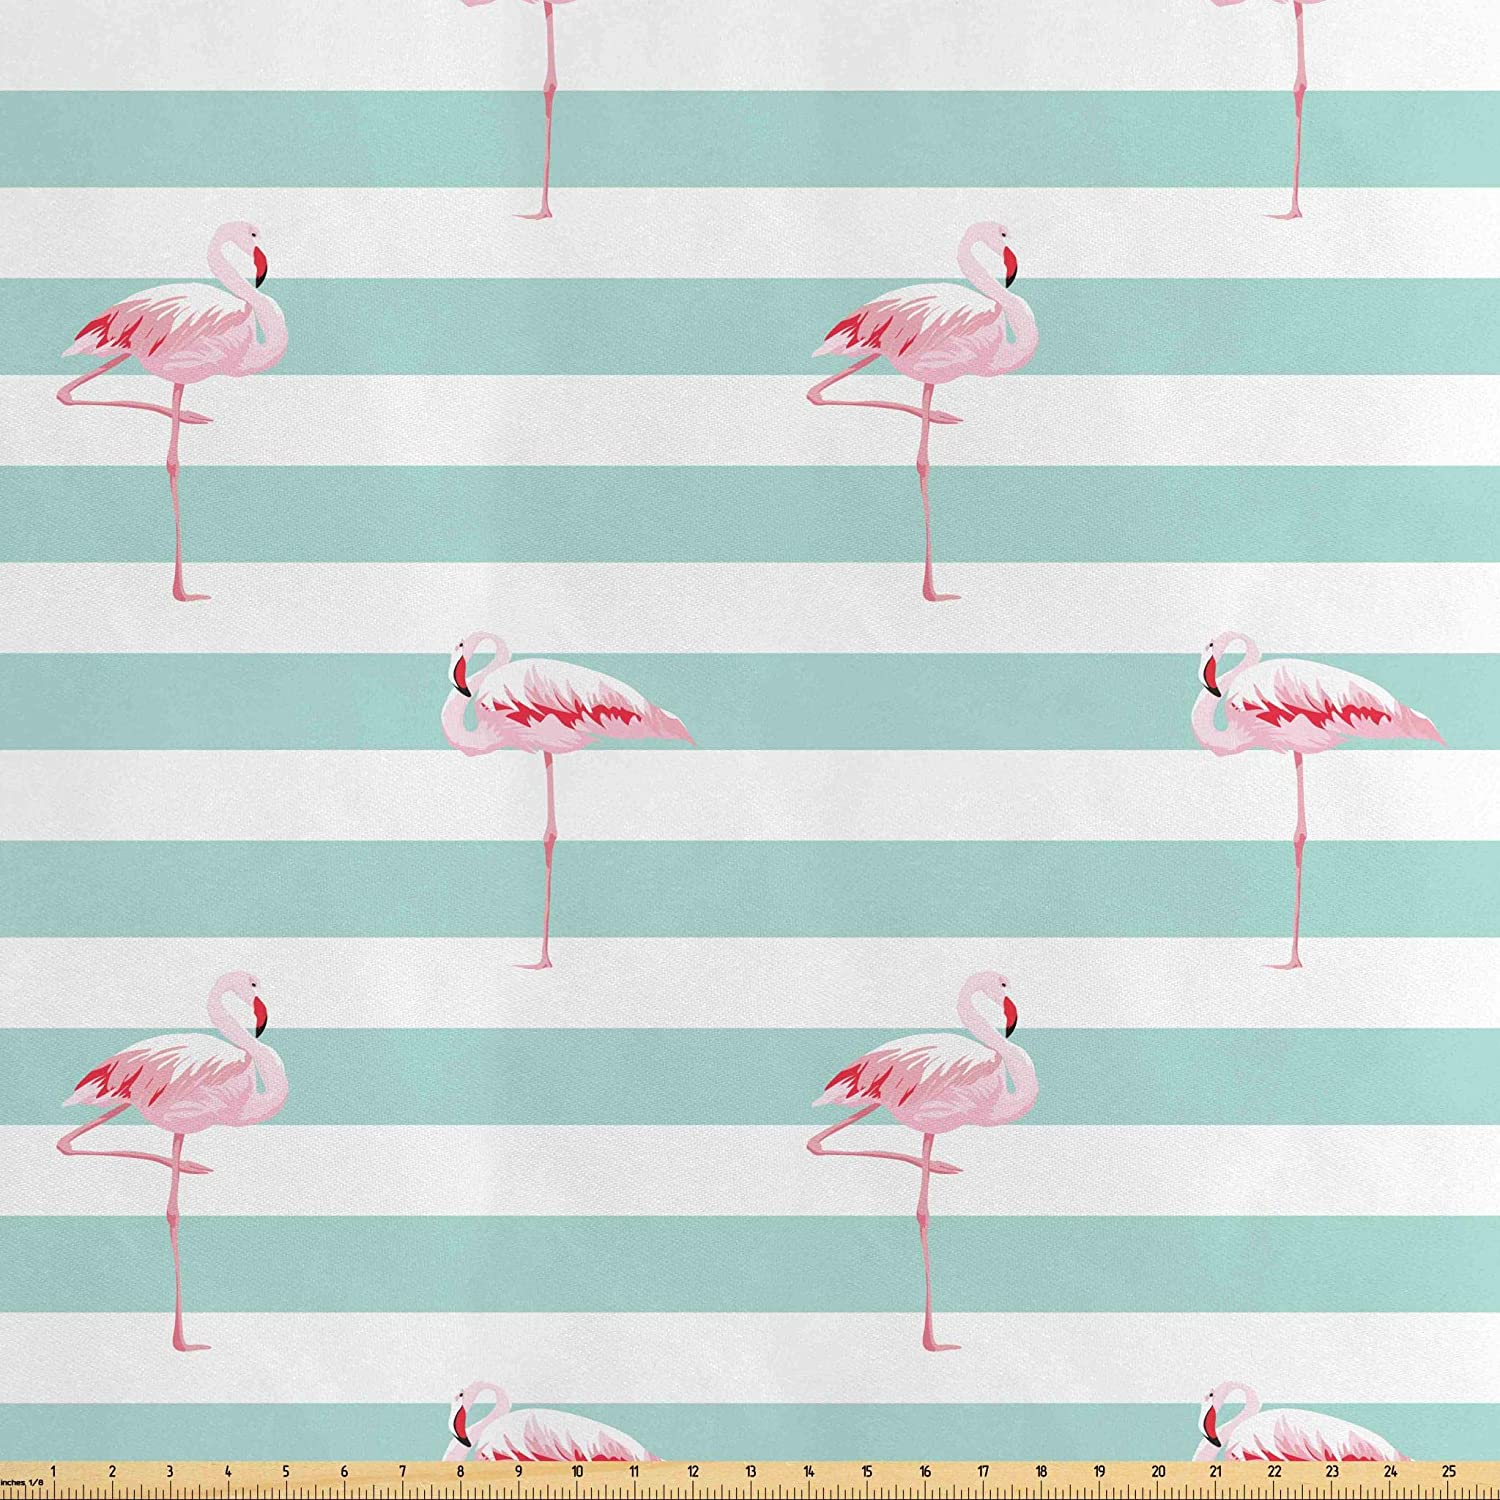 Lunarable Modern Fabric by The Yard, Pink Flamingo Birds on Horizontal Striped Bands Background Love Tropical Graphic, Decorative Satin Fabric for Home Textiles and Crafts, 5 Yards, Seafoam White